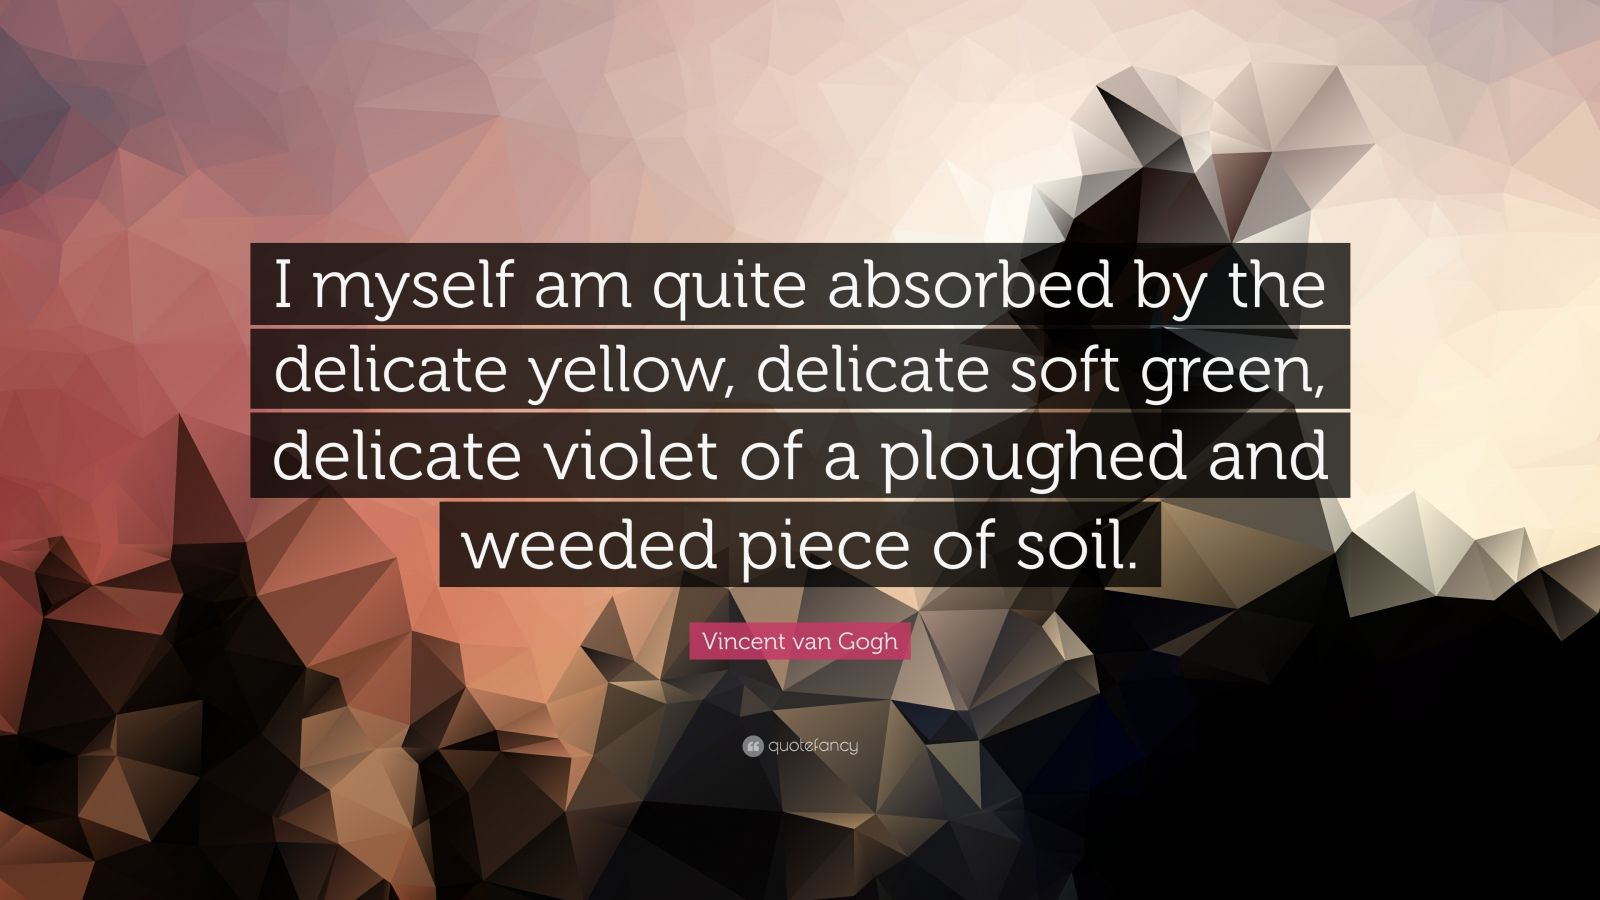 """Vincent van Gogh Quote: """"I myself am quite absorbed by the delicate yellow, delicate soft green, delicate violet of a ploughed and weeded piece of soil."""""""